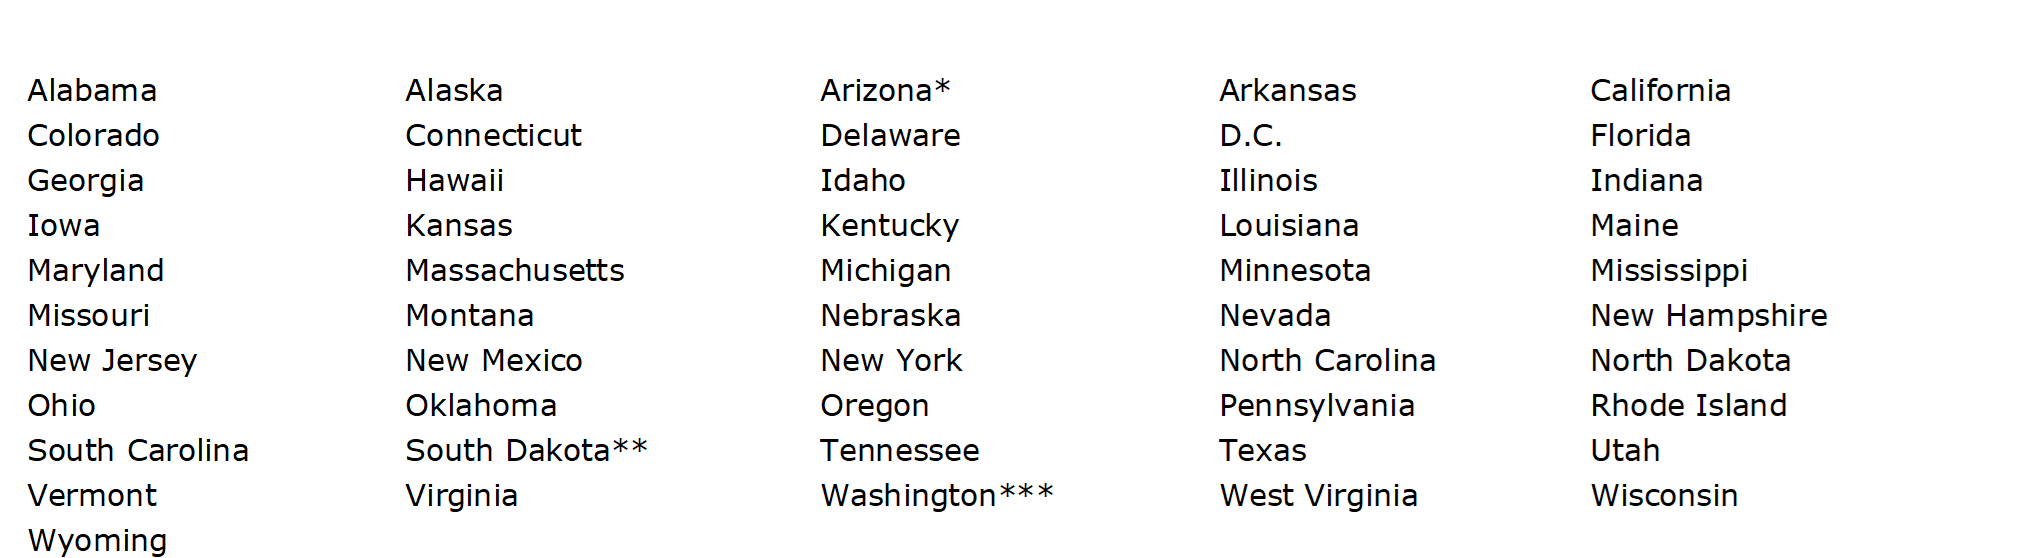 List of States that the curriculum meets the state requirements